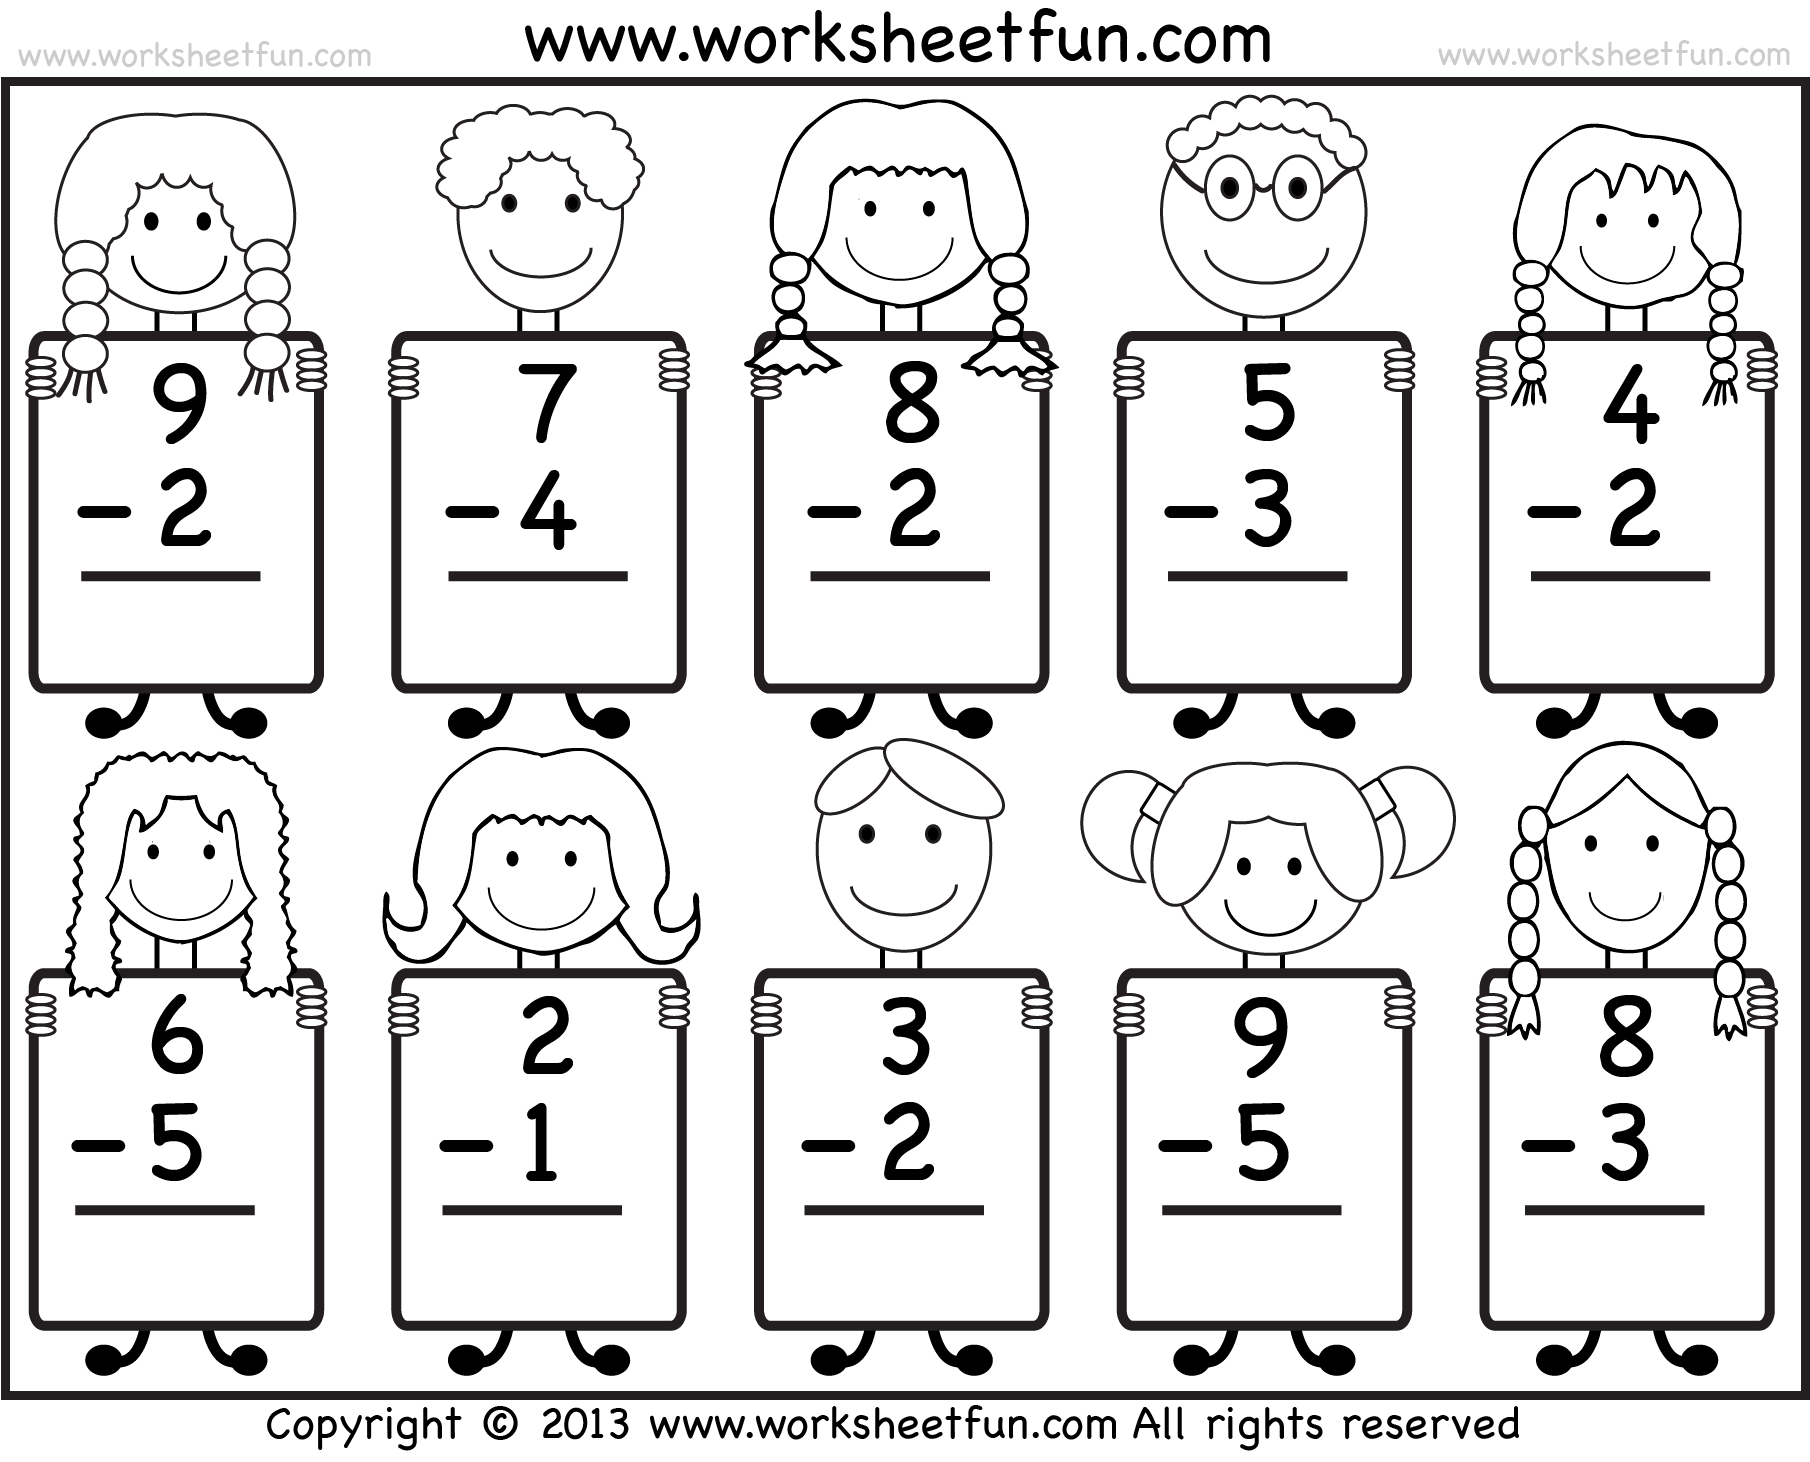 Worksheet Subtraction For Kindergarten beginner subtraction 10 kindergarten worksheets subtraction